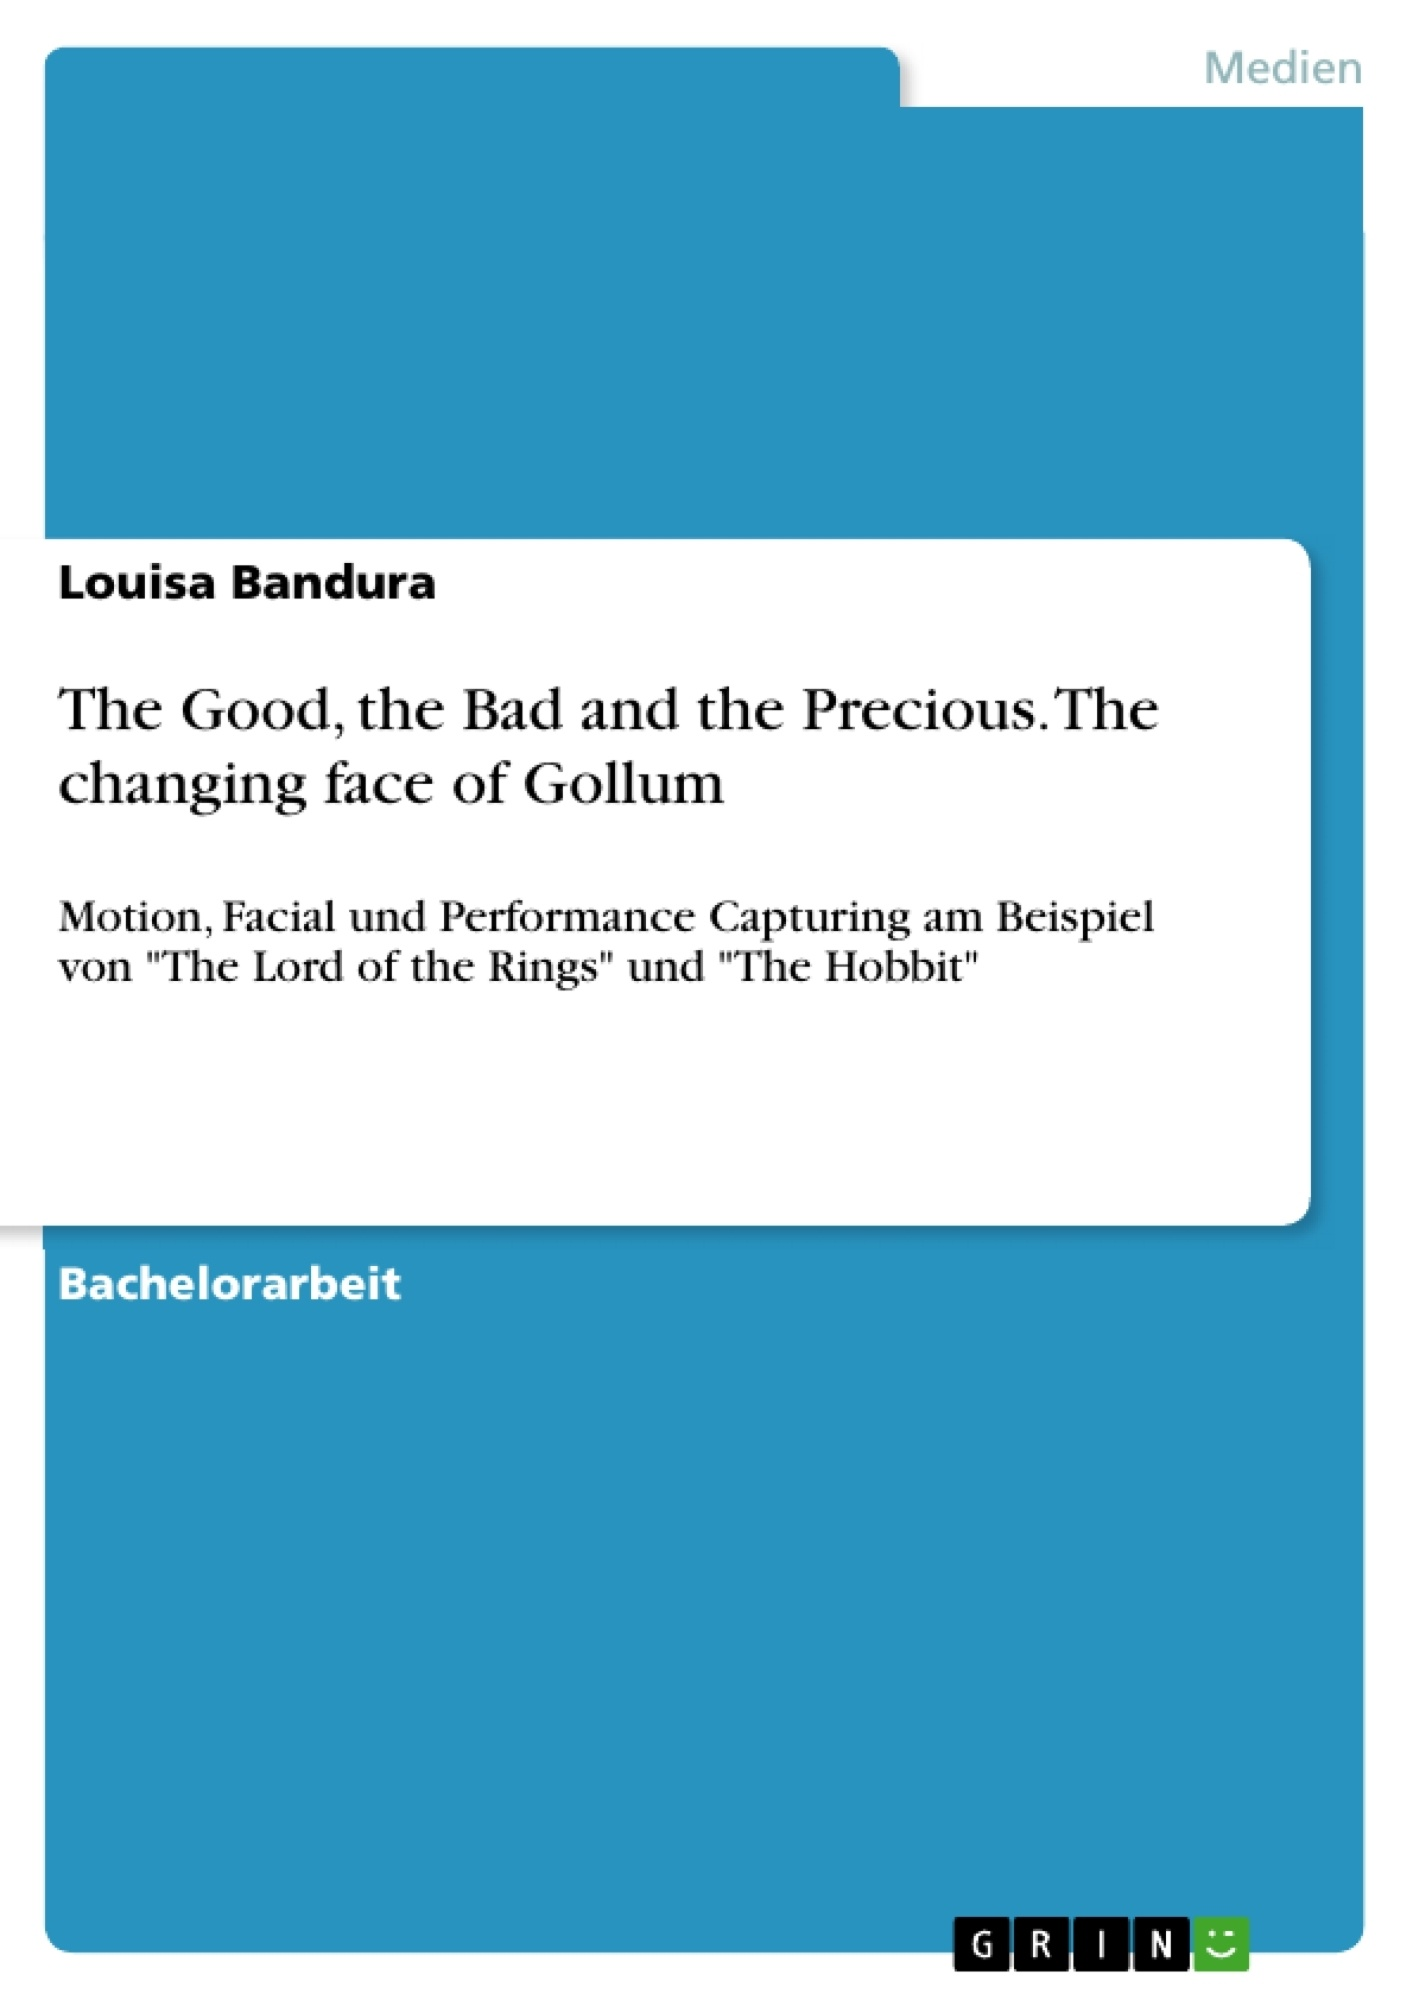 Titel: The Good, the Bad and the Precious. The changing face of Gollum